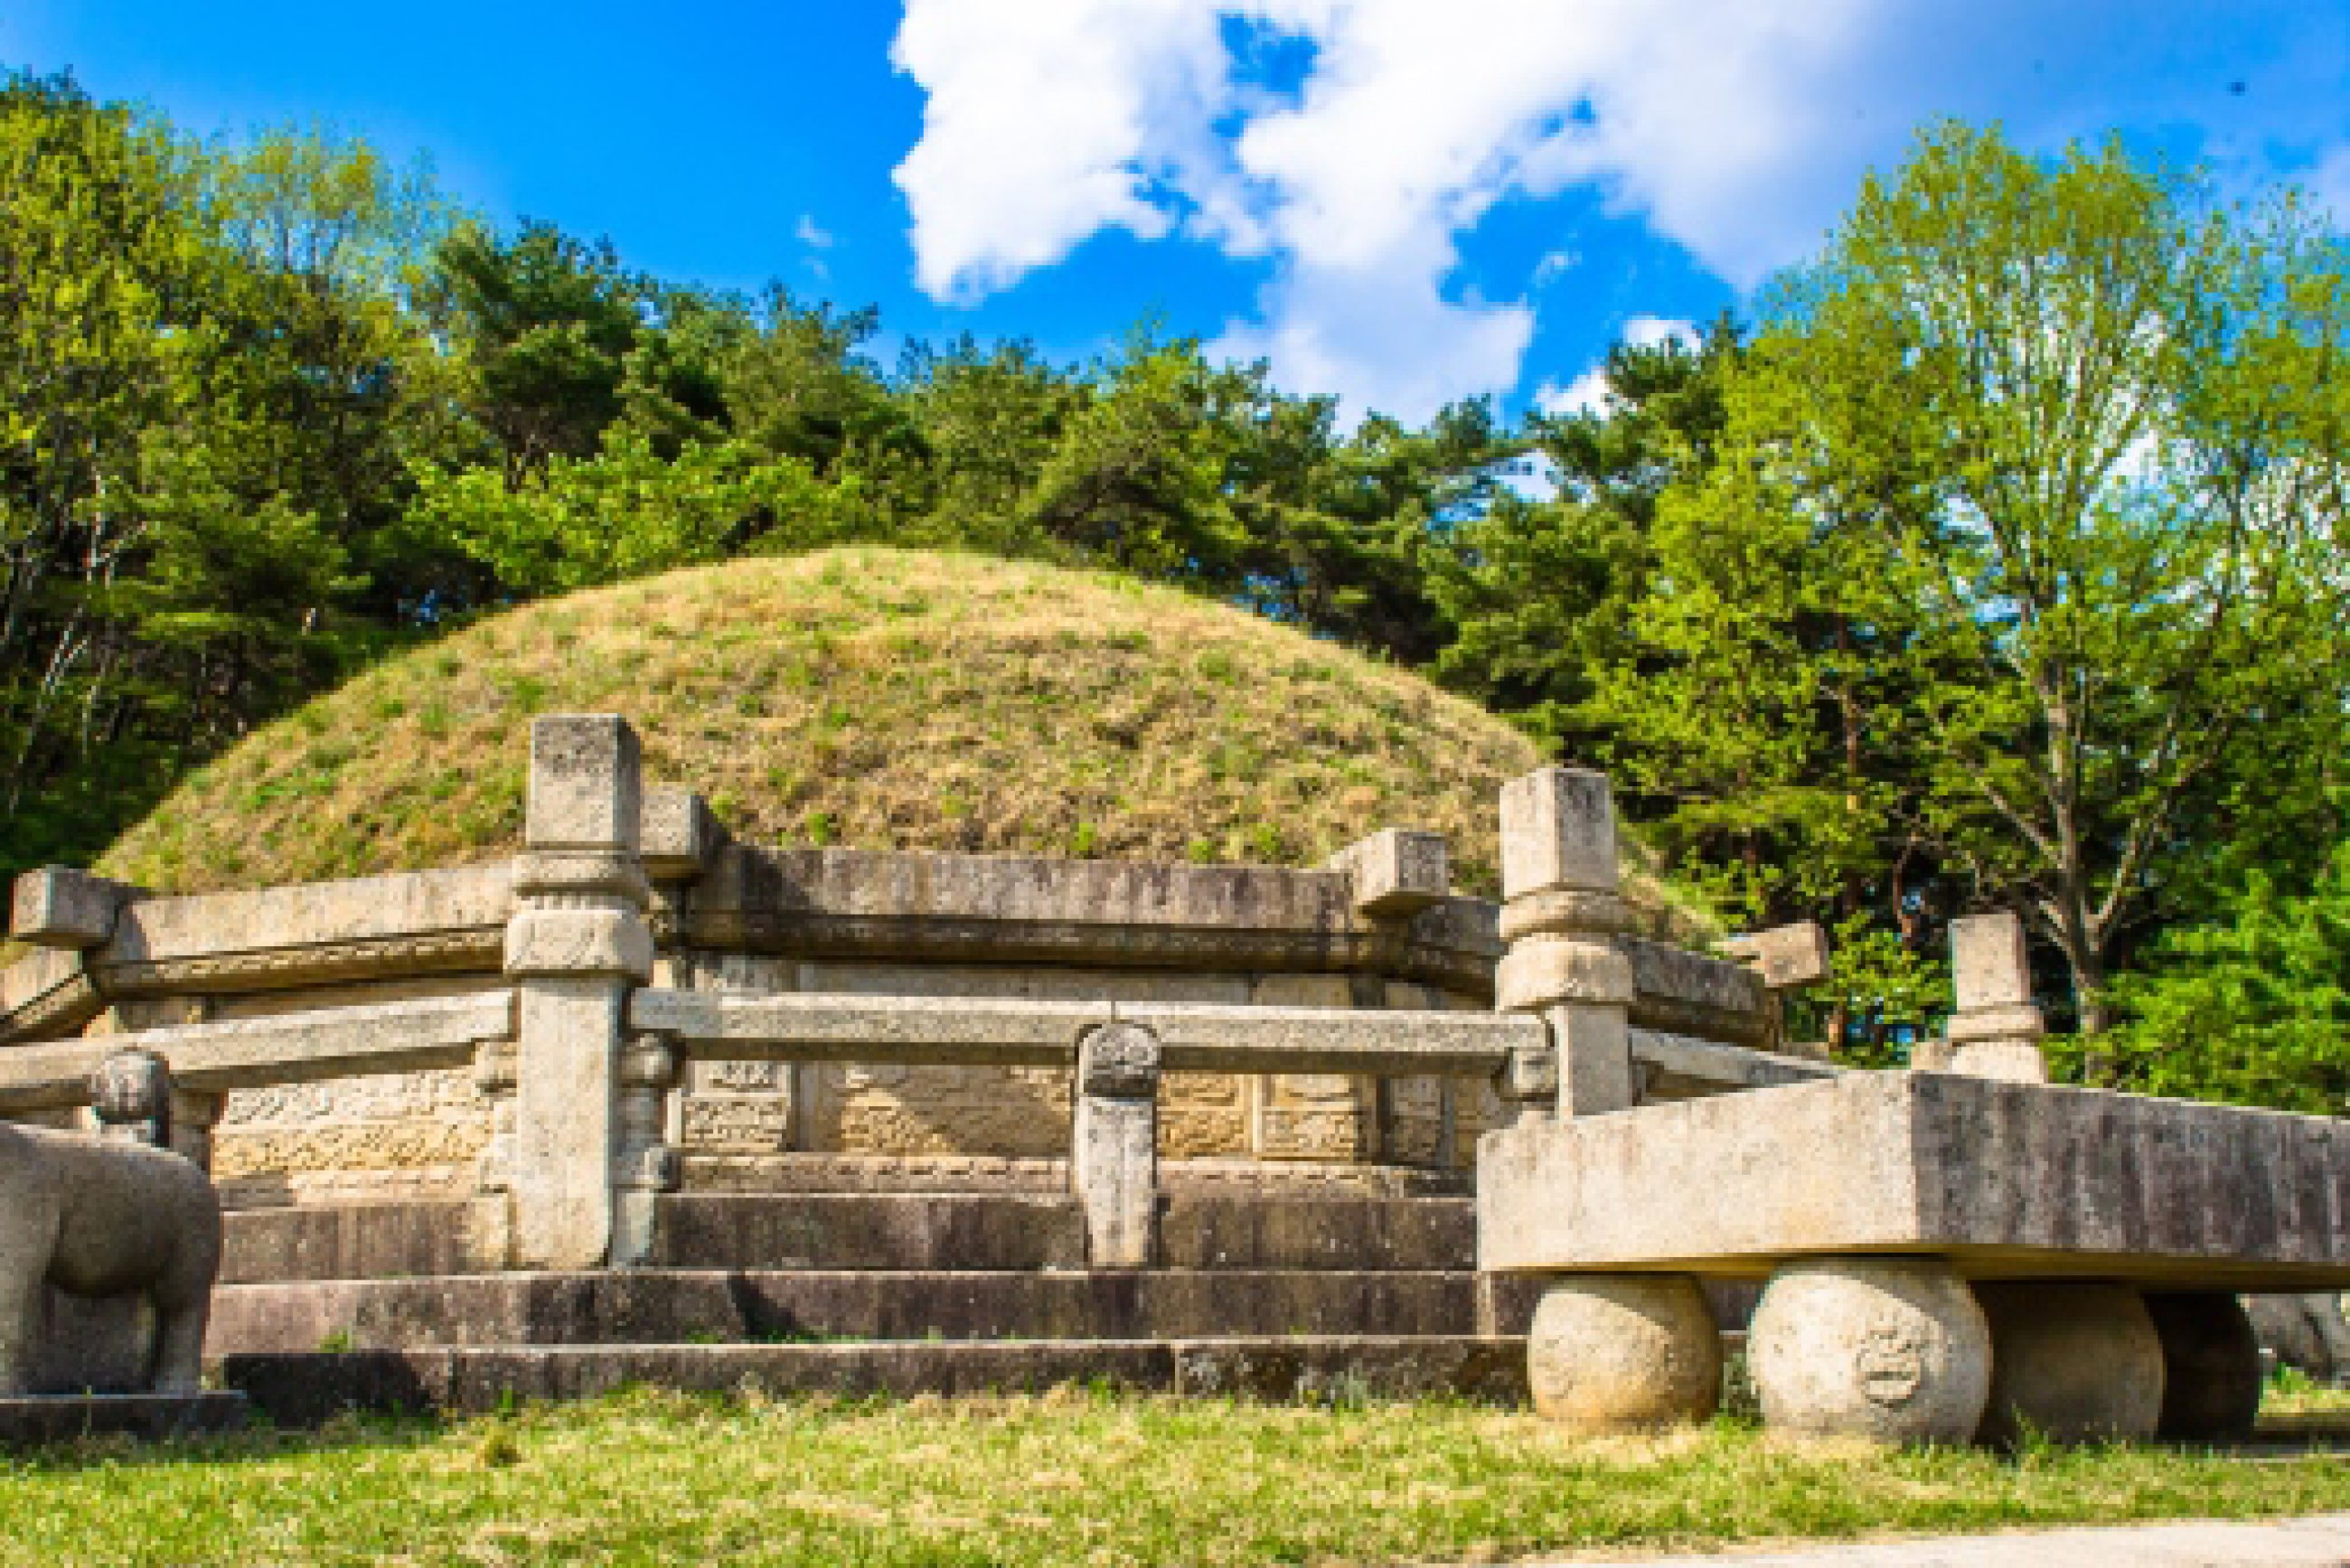 https://bubo.sk/uploads/galleries/7452/tomb-of-king-kongmin-a-14th-century-mausoleum-located-in-haeson-ri-kaepung-county-outside-of-the-city-of-kaesong-north-korea.jpg